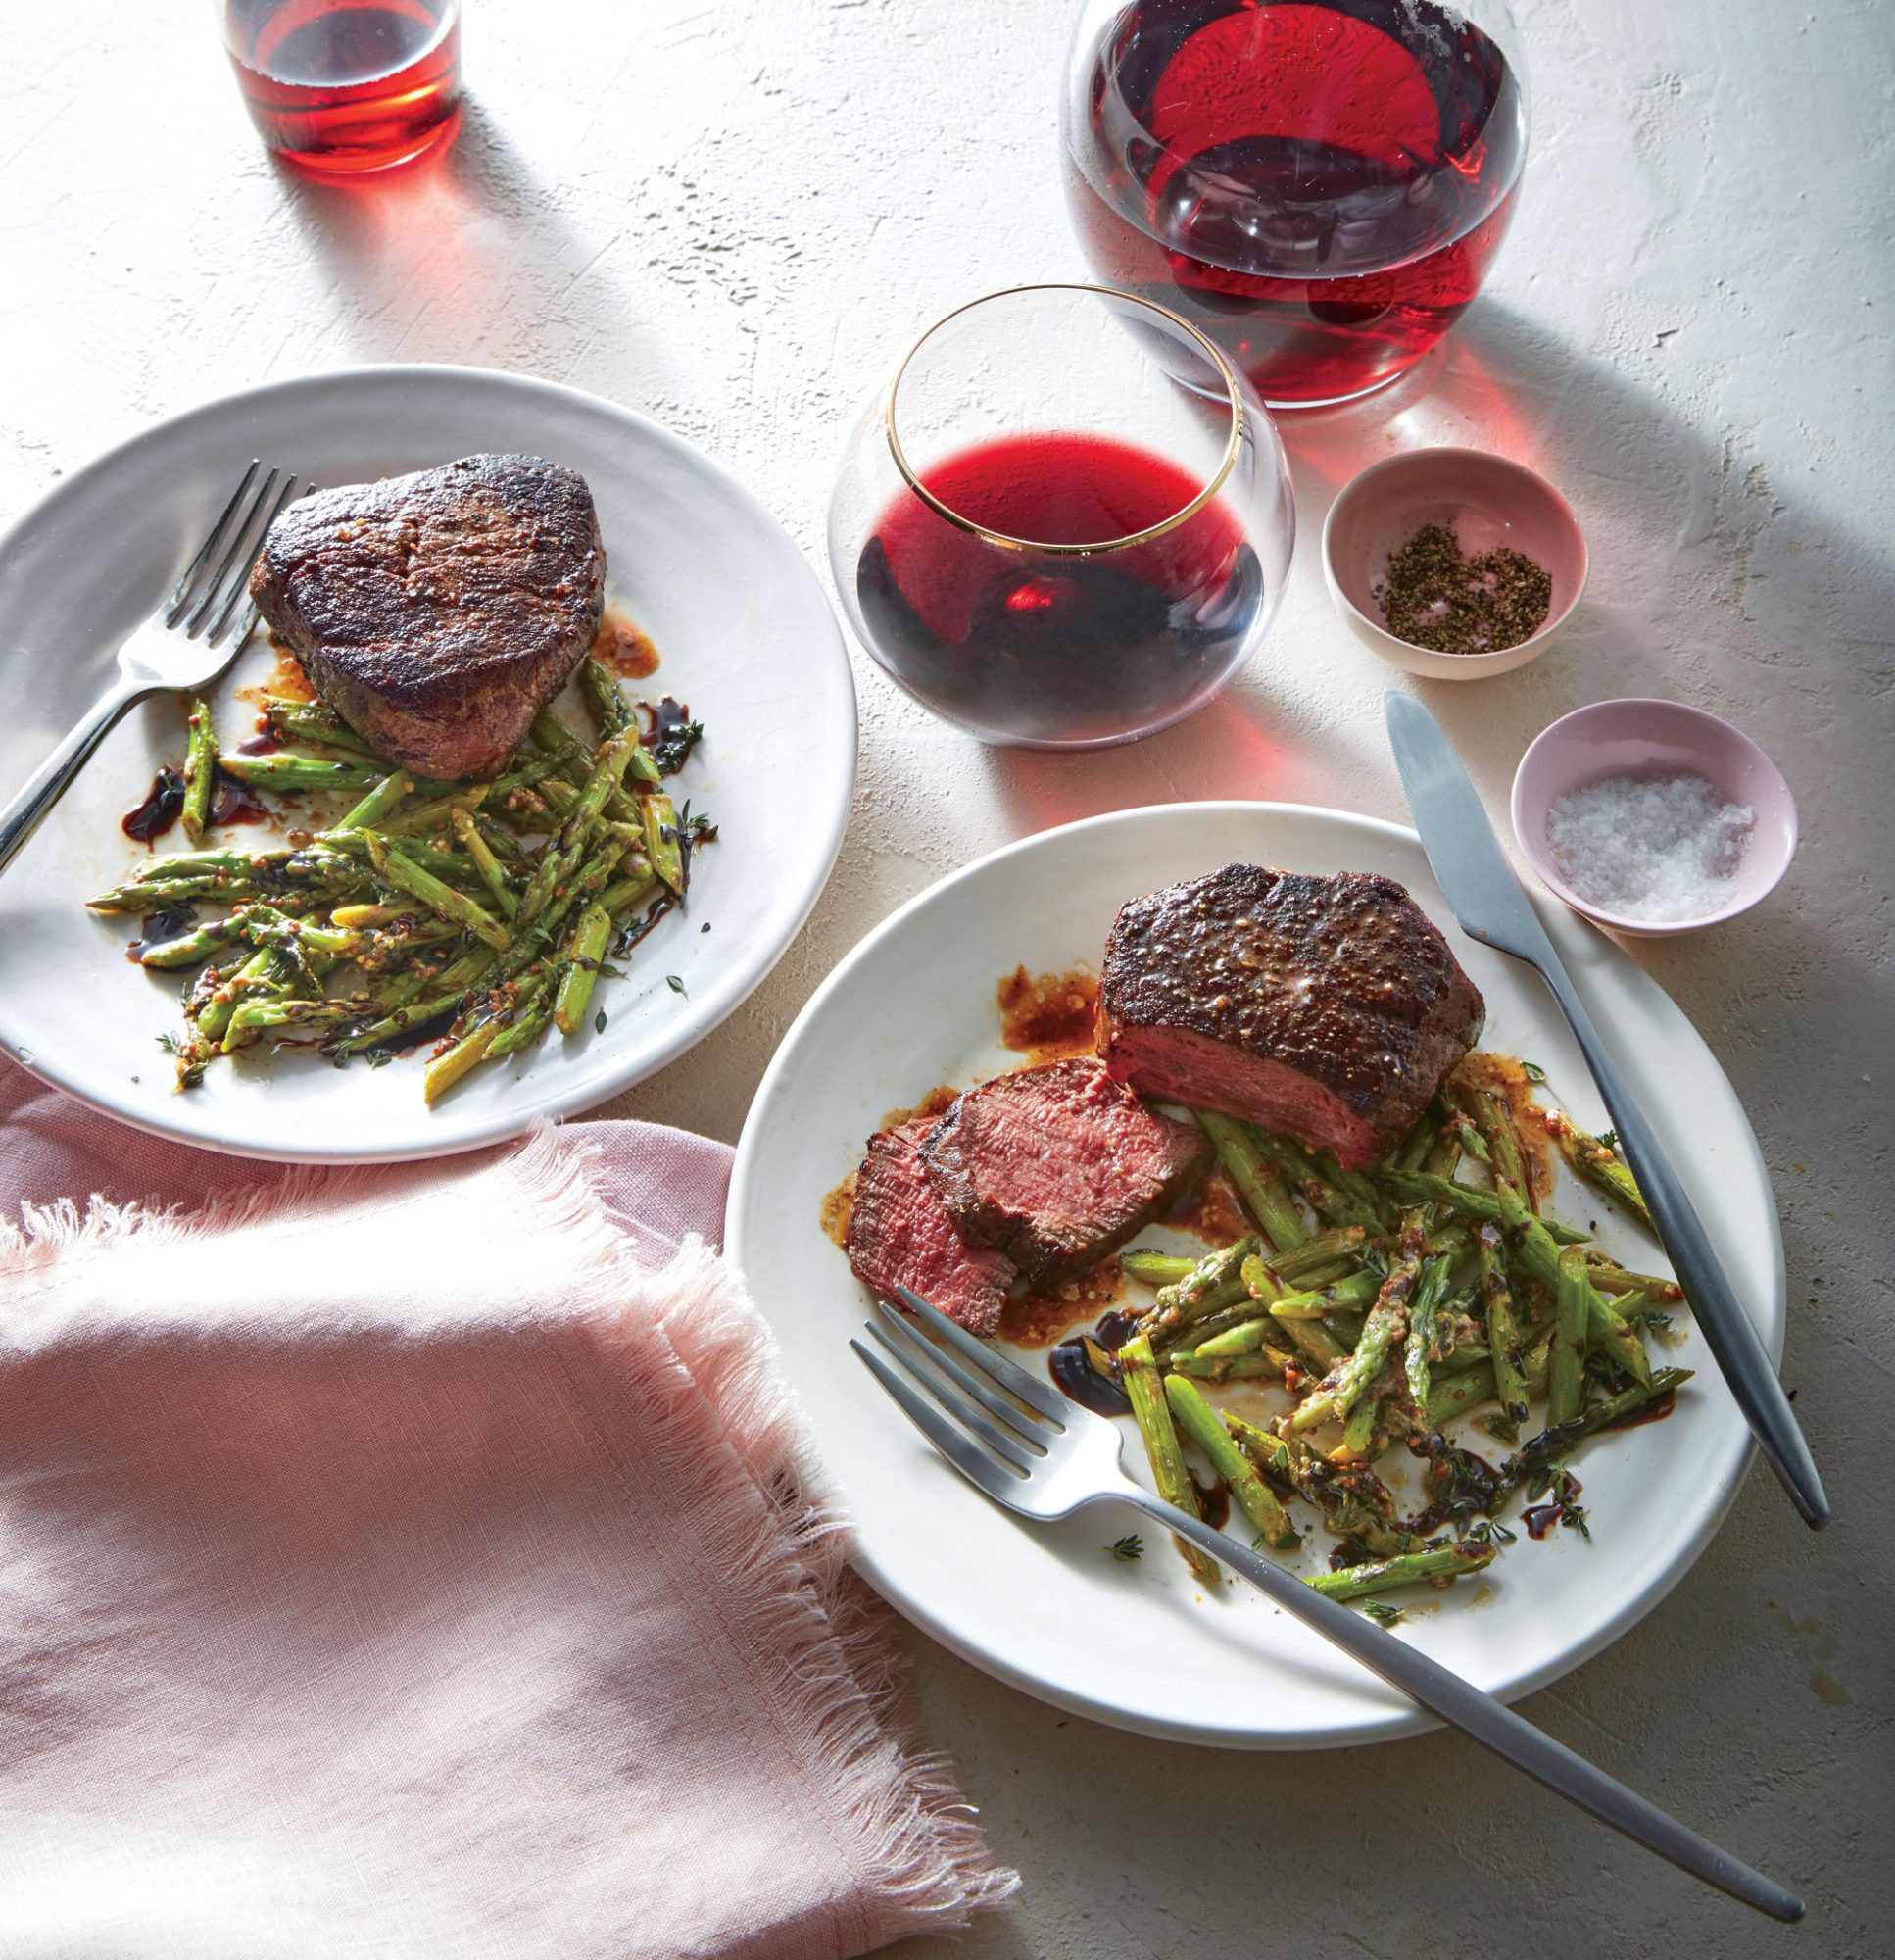 Beef tenderloin steaks are often considered a special-occasion cut, but when they go on sale (or you're ready for a splurge), this classic preparation is foolproof. Our pro tip: use a timer rather than turning, prodding, or overcooking the steaks, and set the timer again while they rest so you don't slice too soon. These steaks are ready in minutes, leaving time for you to fully enjoy them.